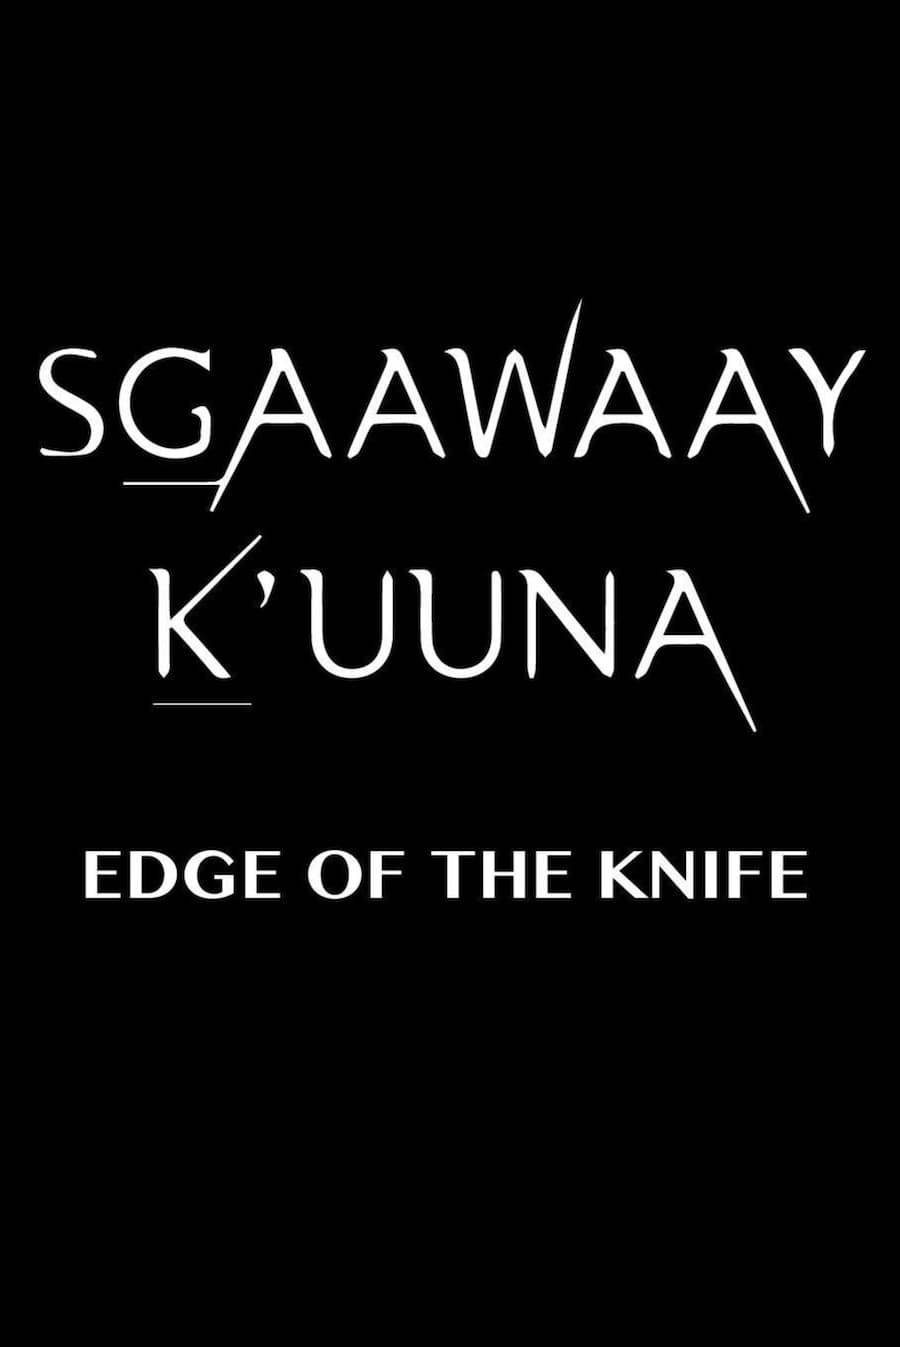 Edge of the Knife (2018)